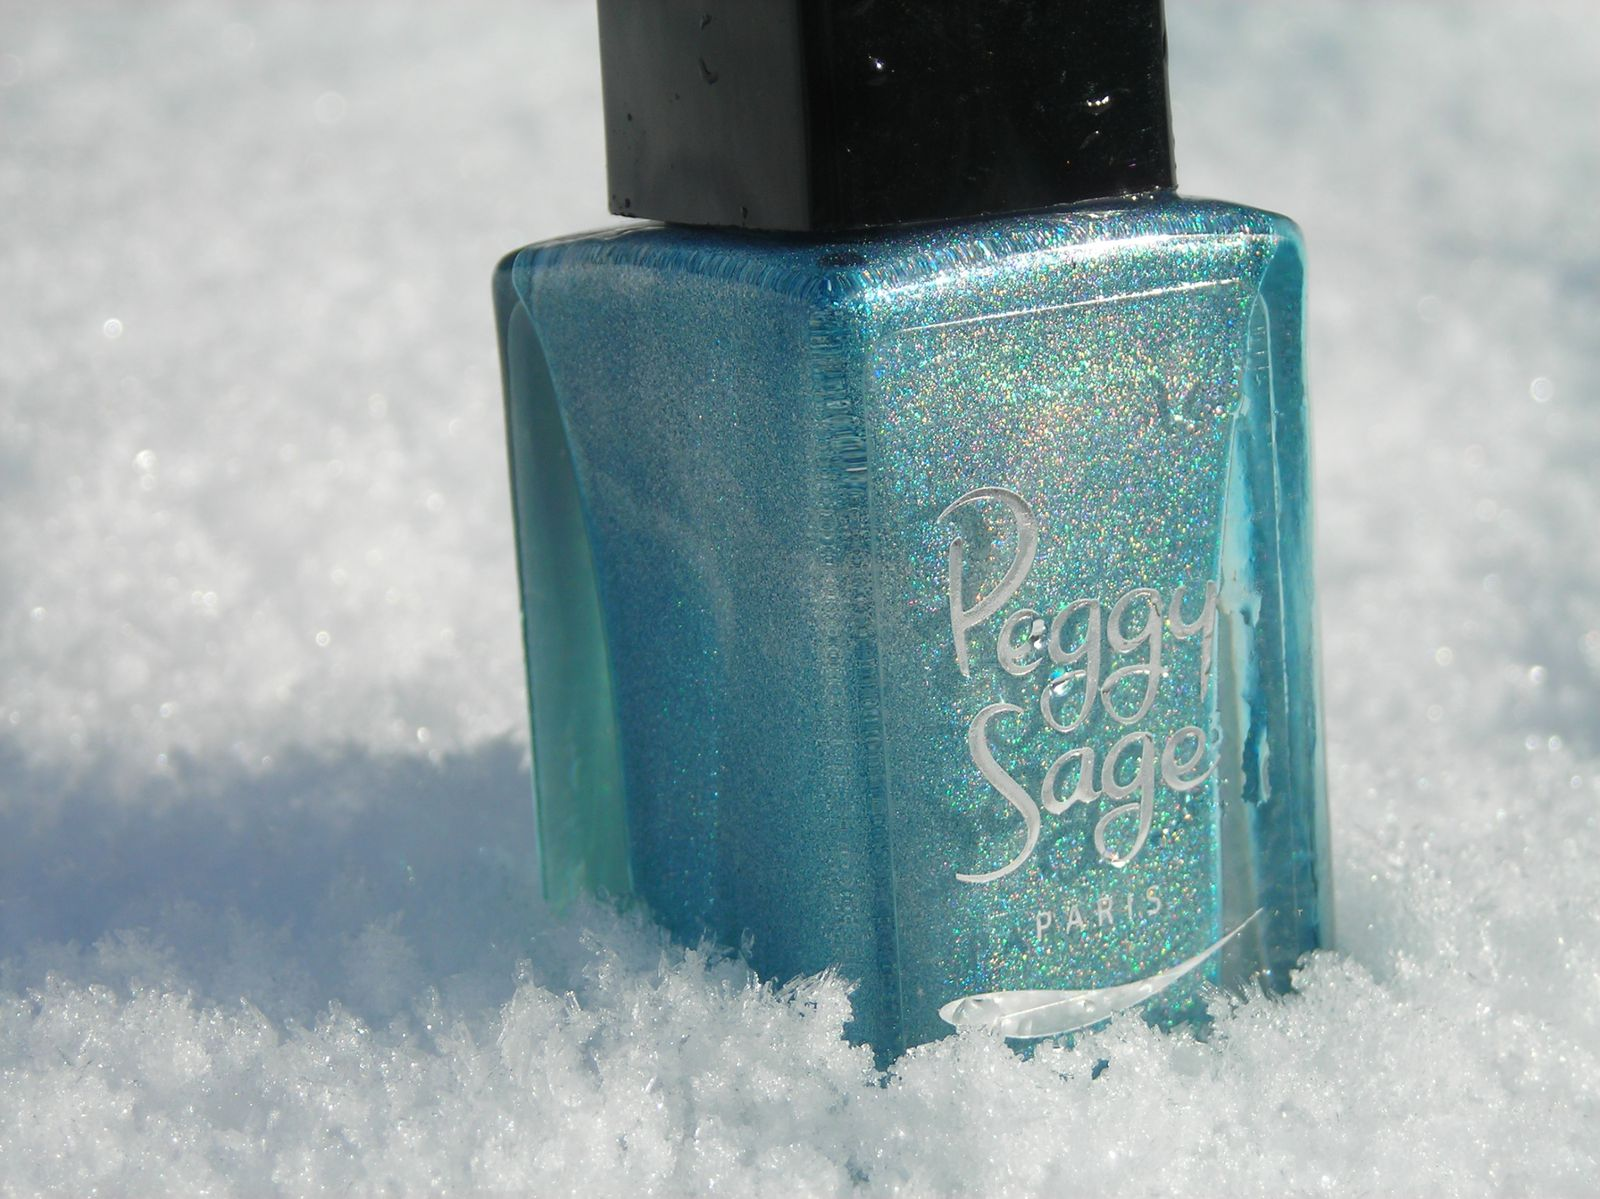 Peggy Sage - Blue Promise 209 (Holo Style)